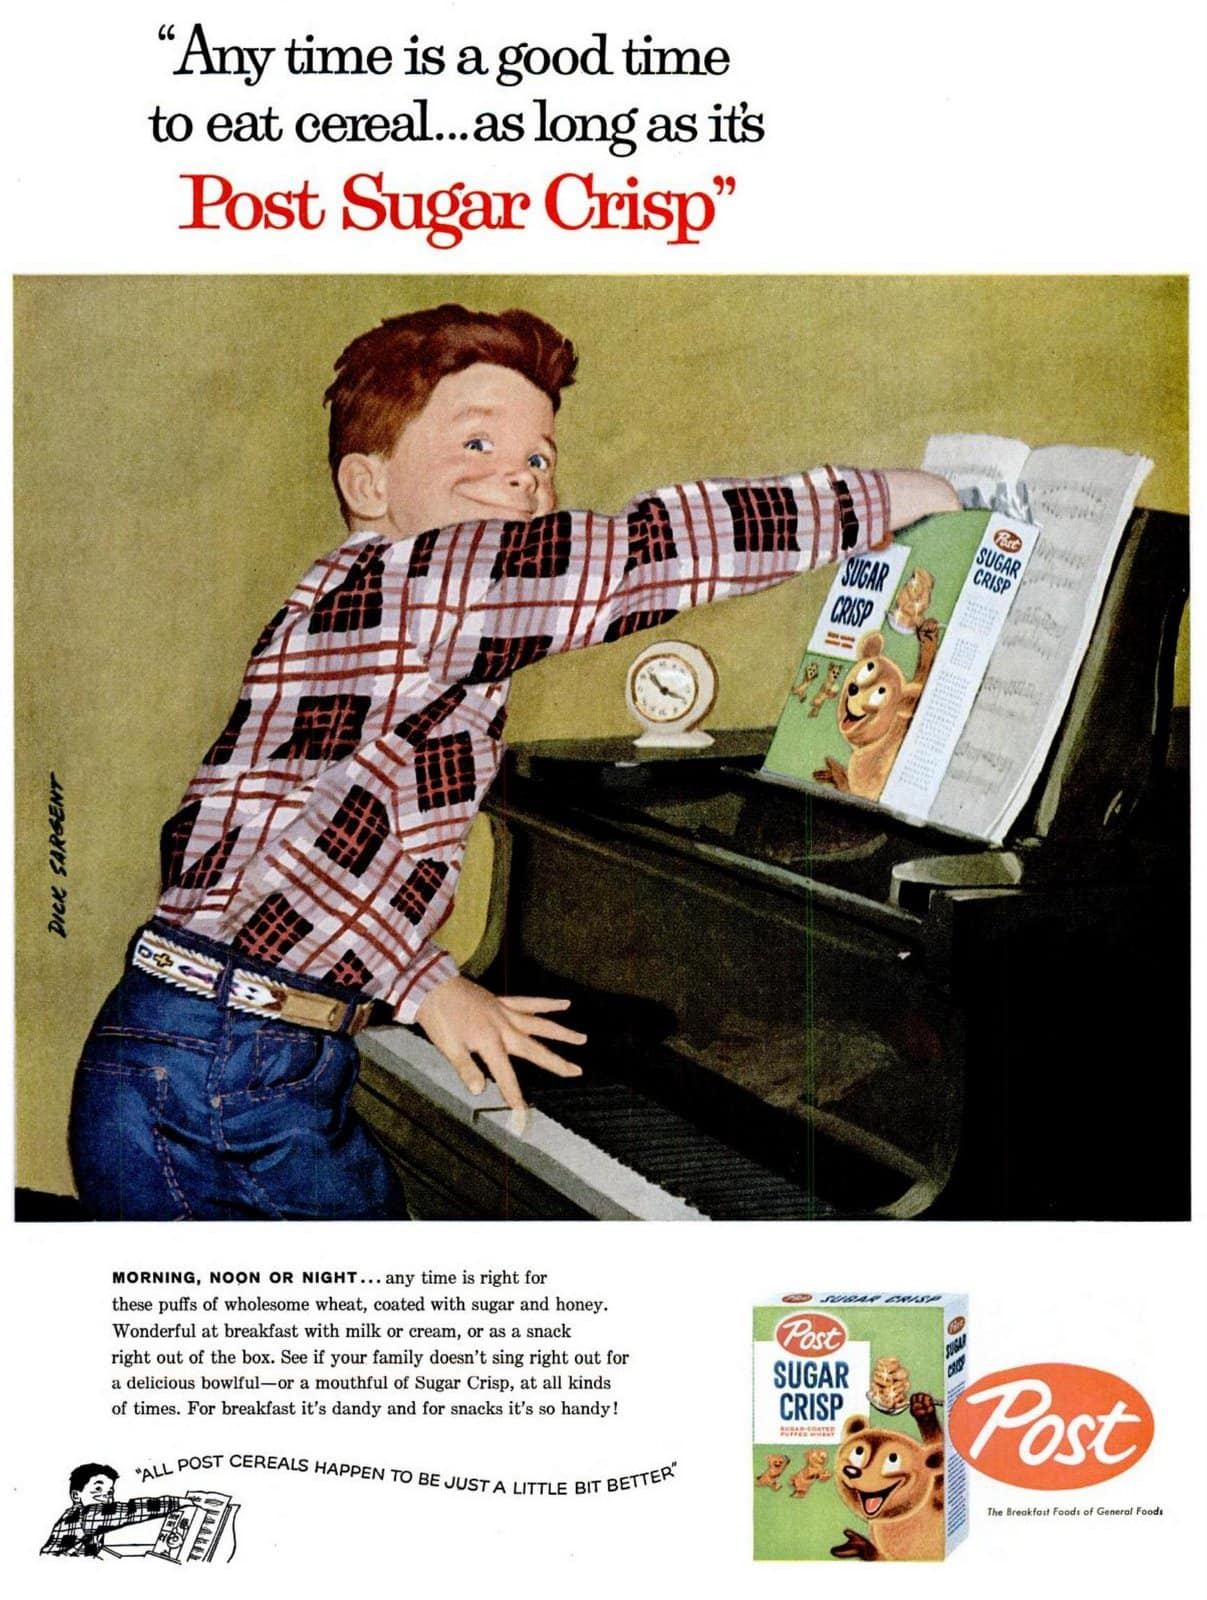 Post Sugar Crisp cereal (1957)